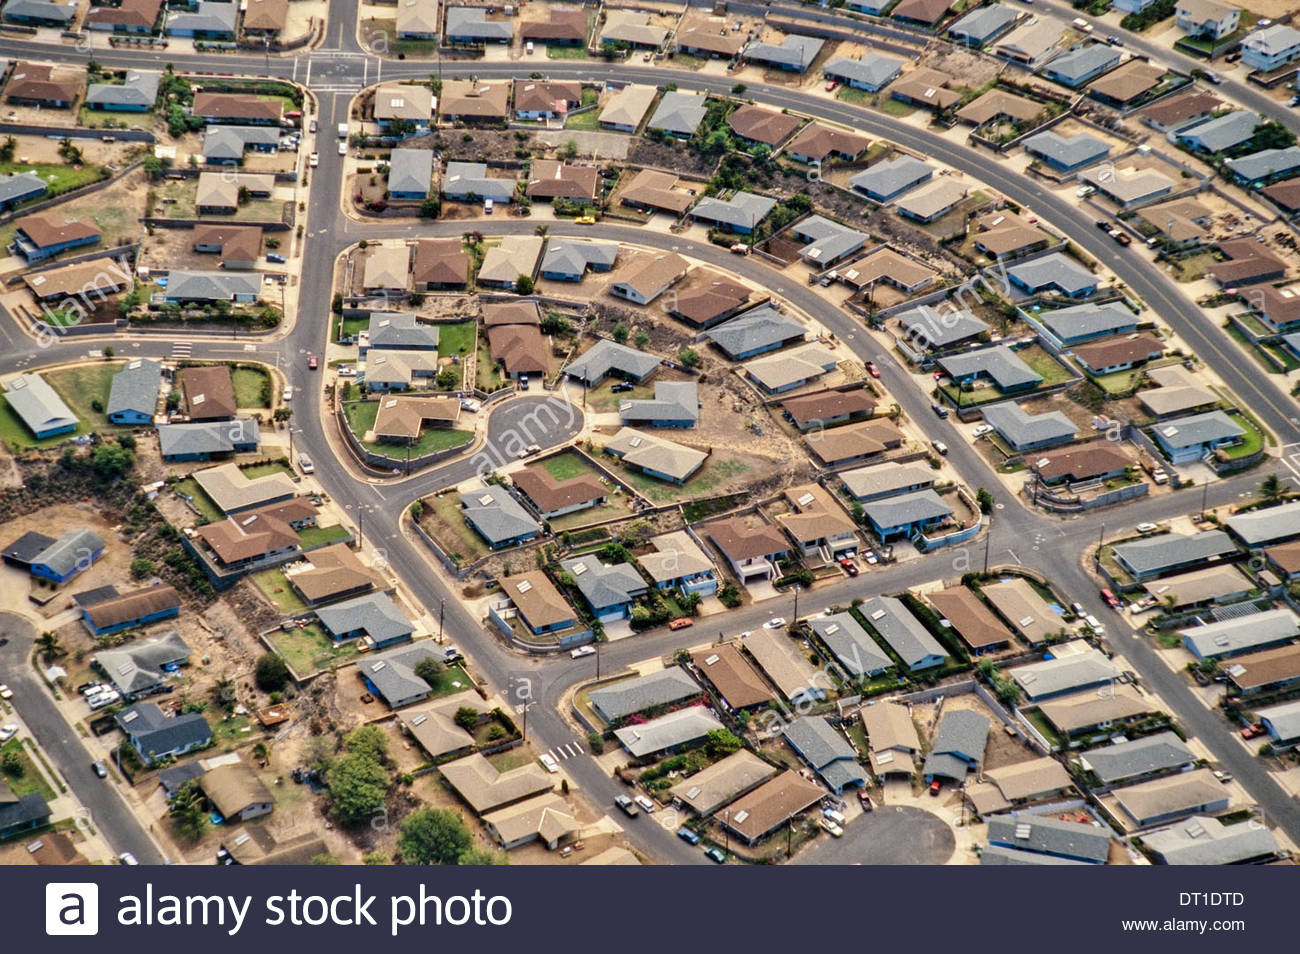 Maui Hawaii Suburban development aerial view on Maui Hawaii - Stock Image